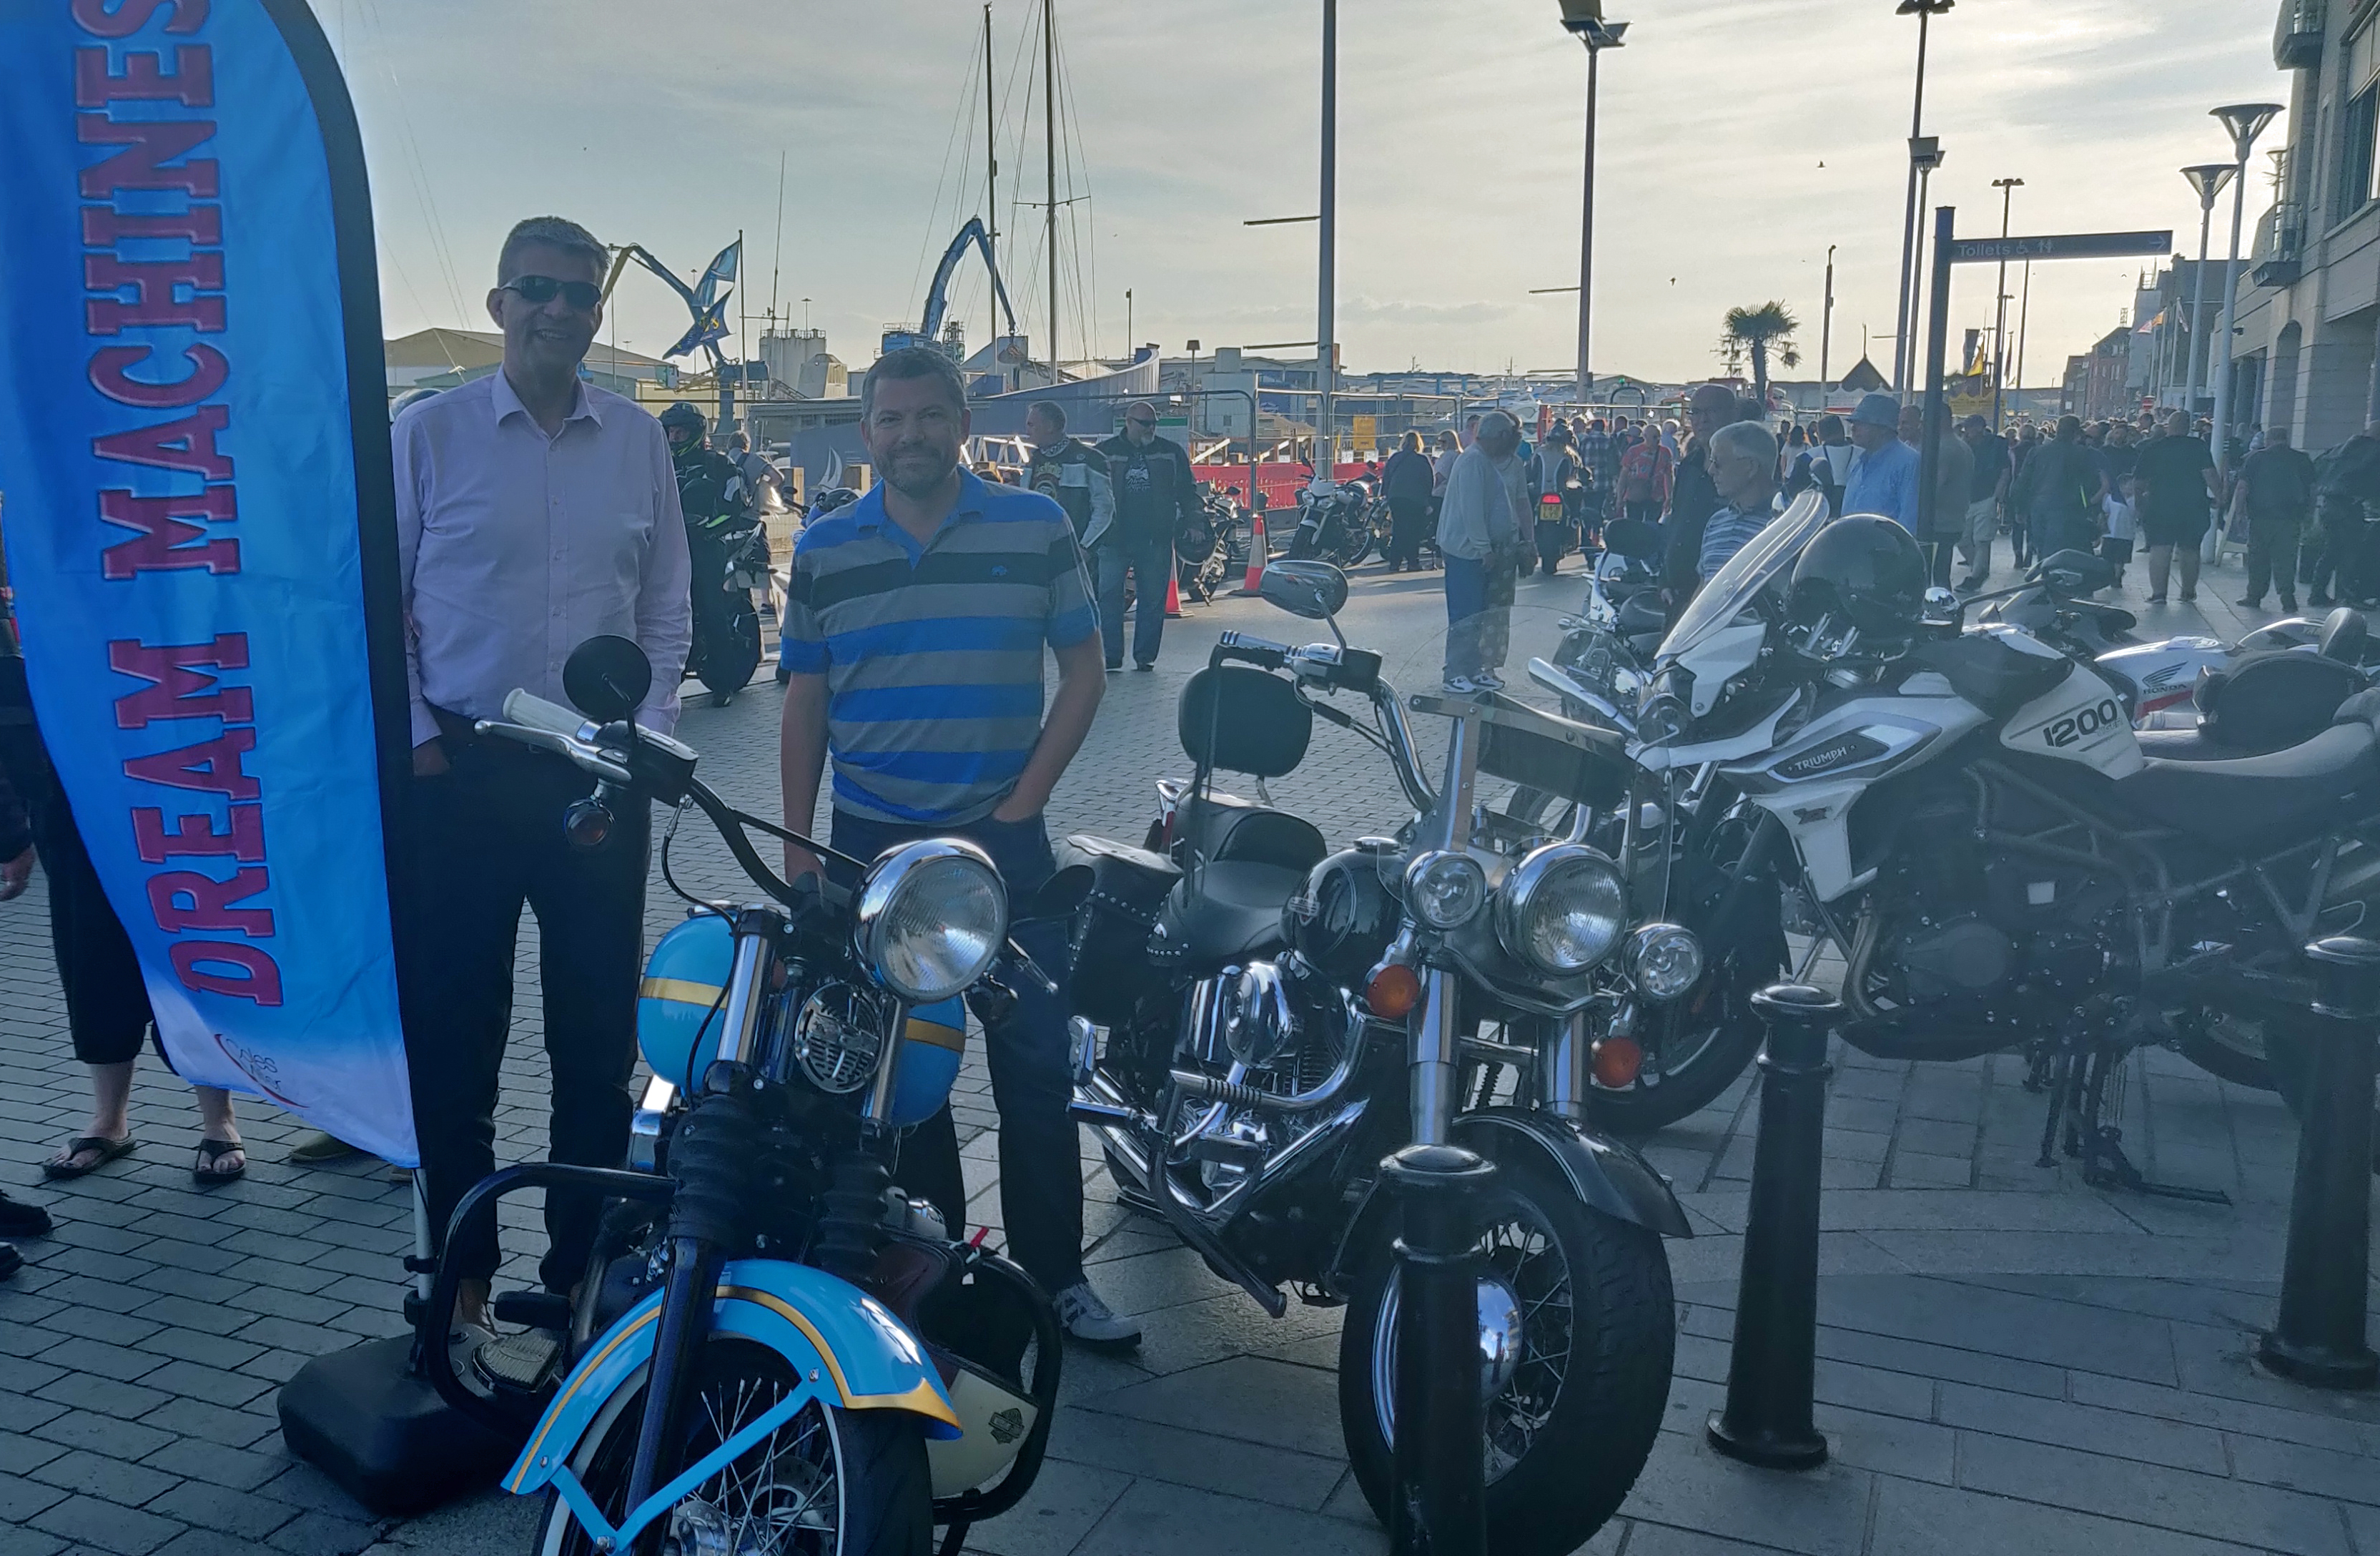 Bike of the Night winner pictured with motorbike on Poole Quay